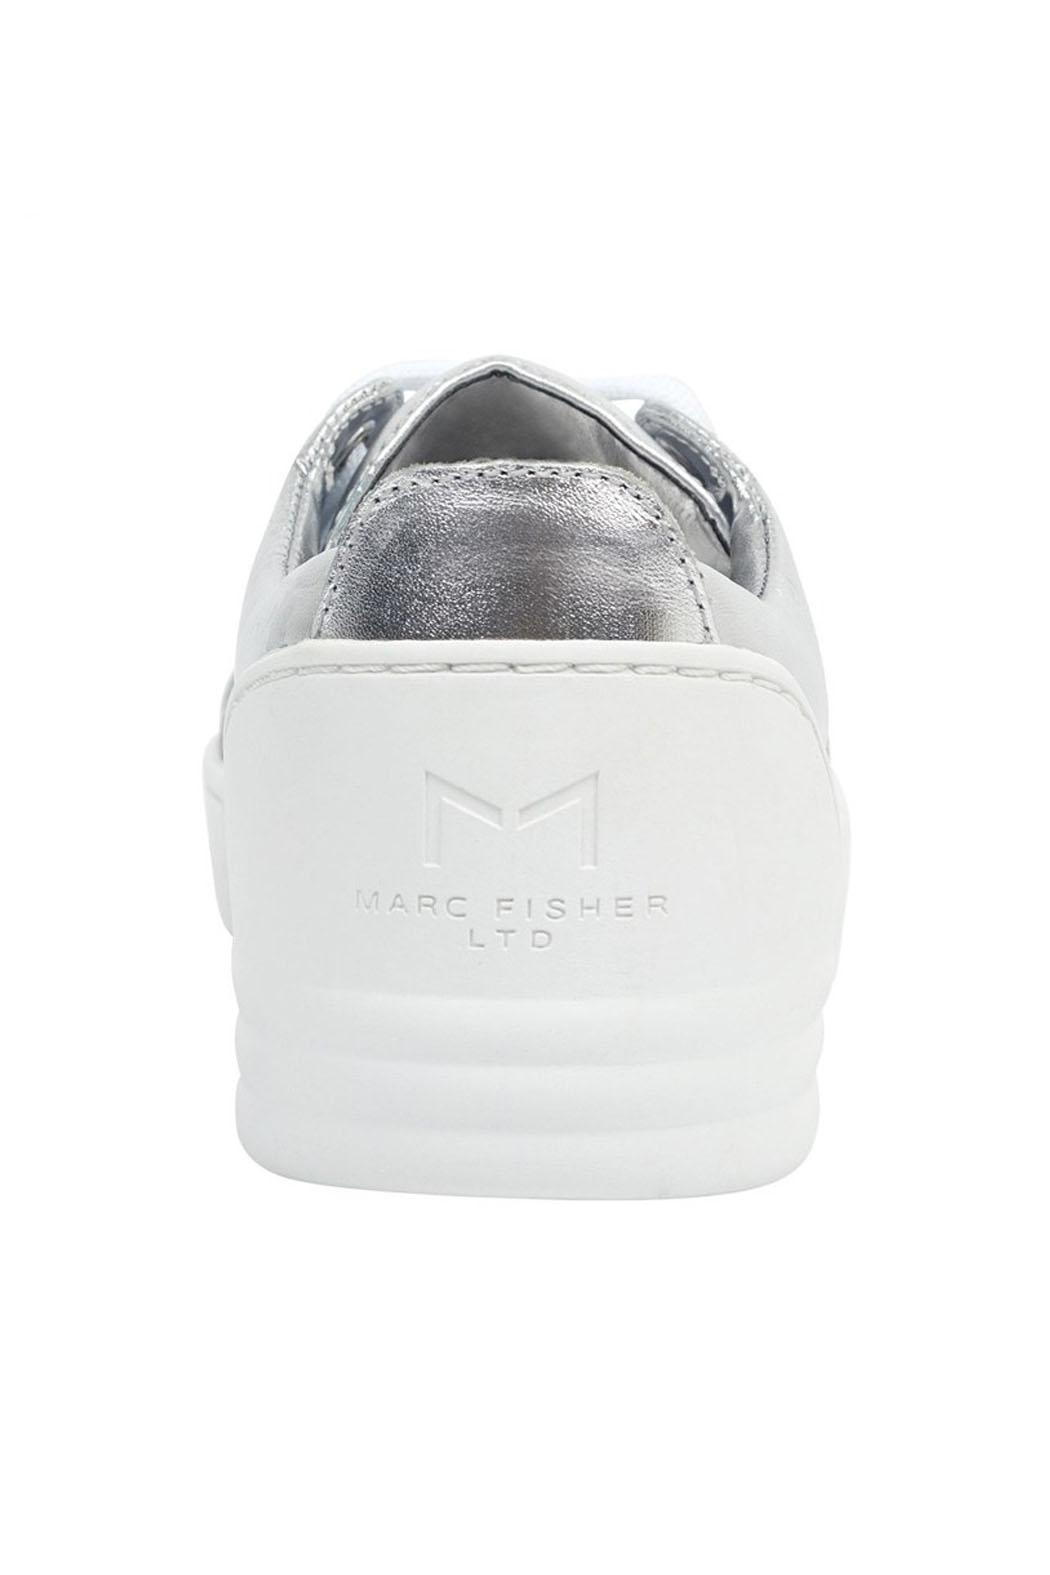 Marc Fisher LTD Candi White/silver Sneaker - Side Cropped Image